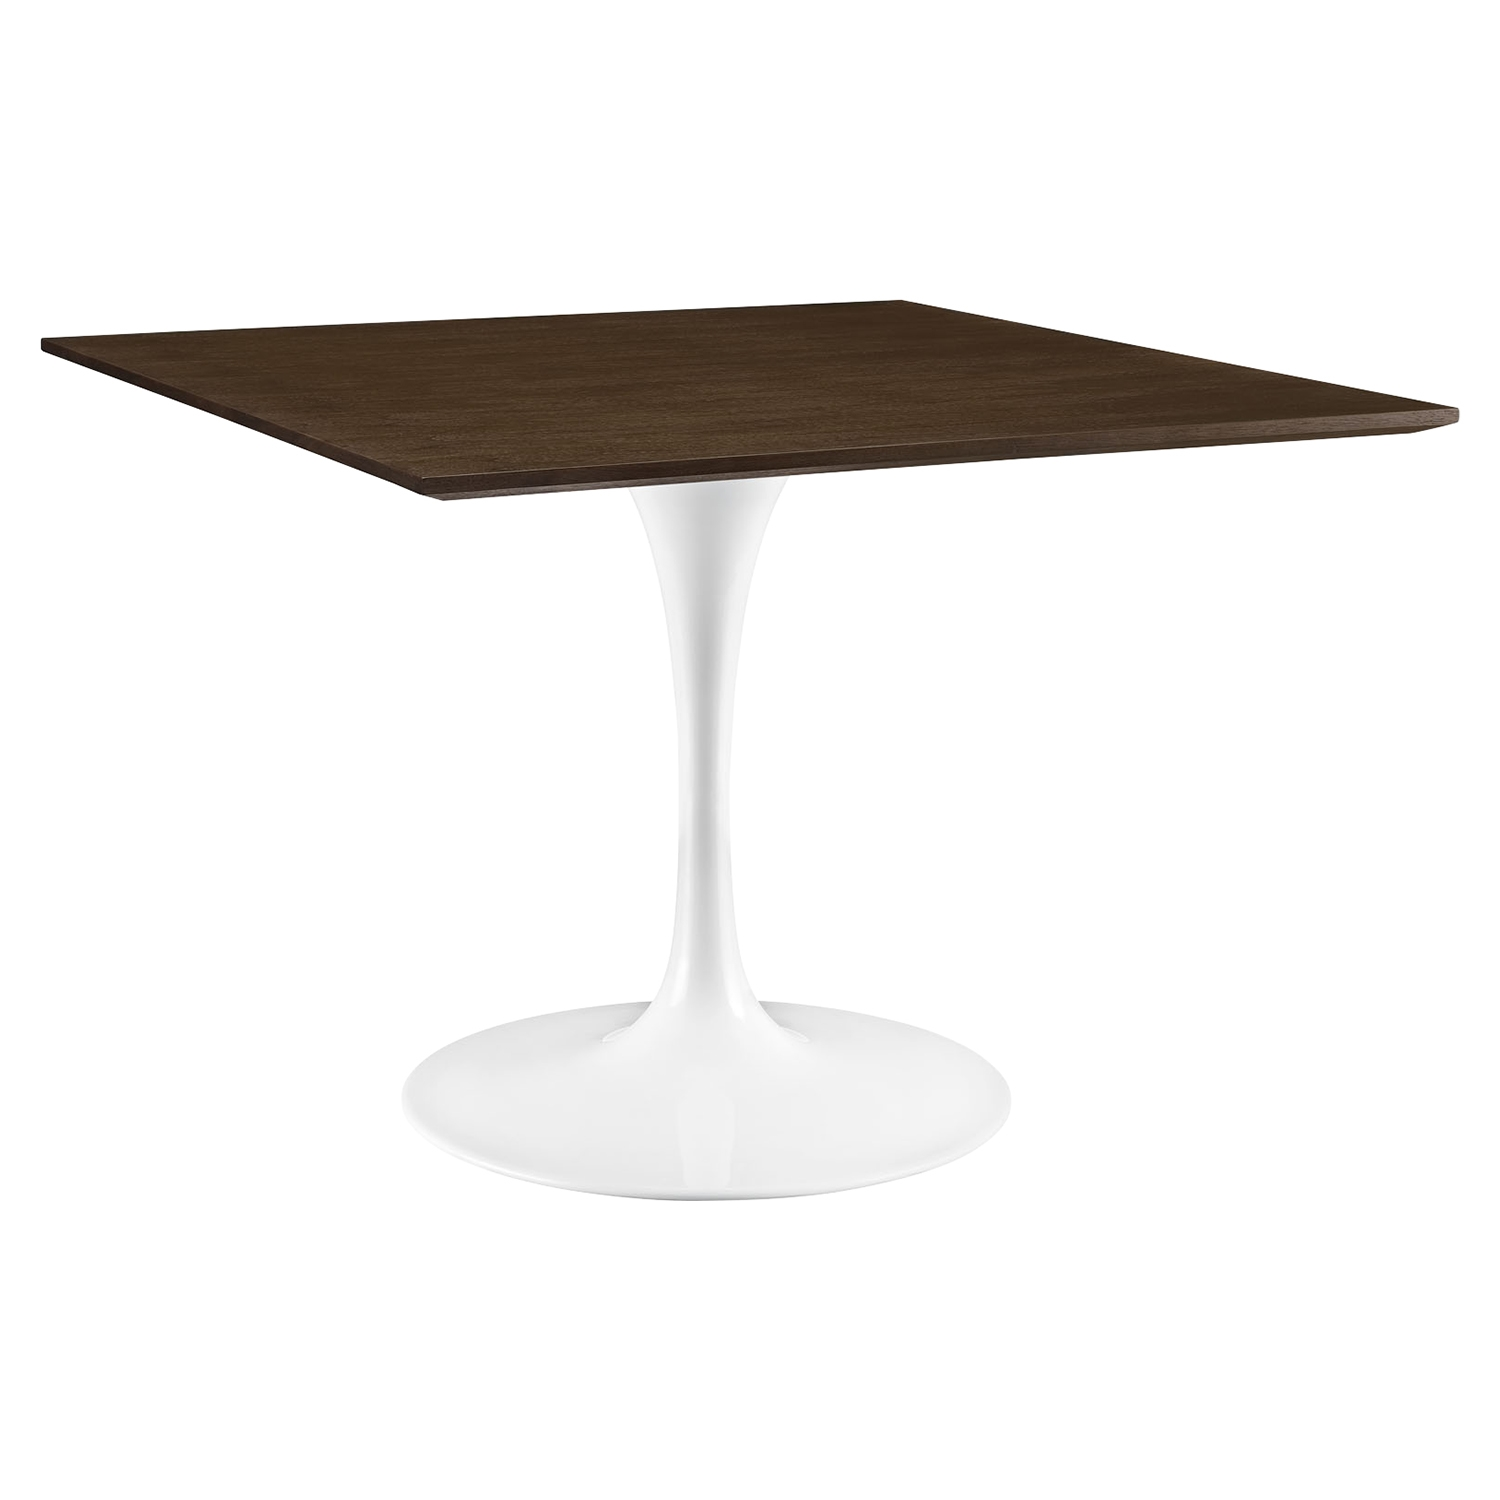 "Lippa 48"" Wood Dining Table - Walnut - EEI-1644-WAL"